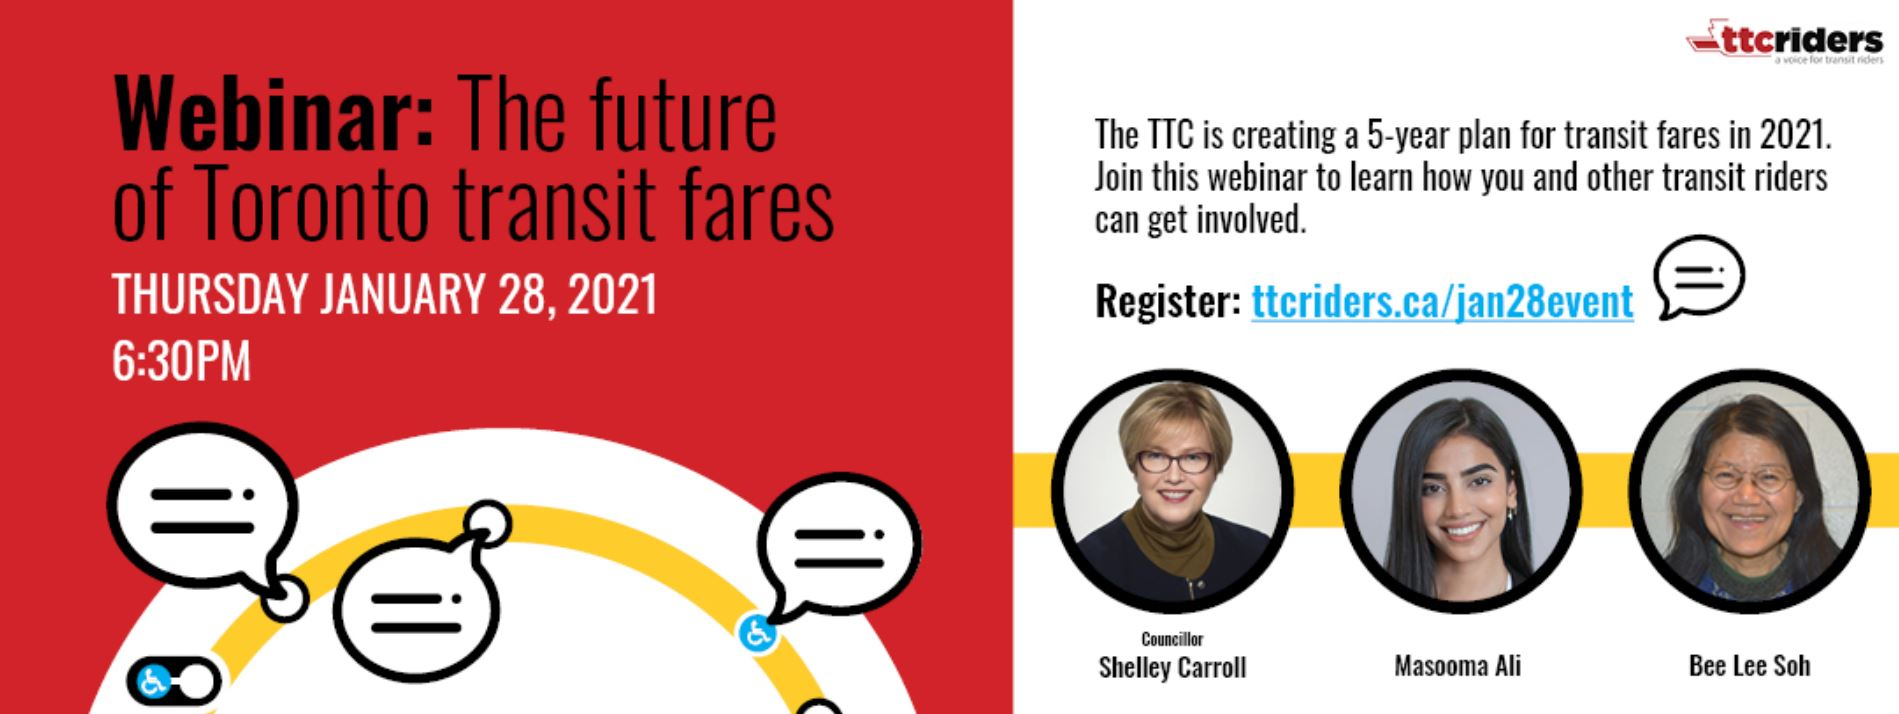 ttcriders_-_the_future_of_transit_fares.JPG